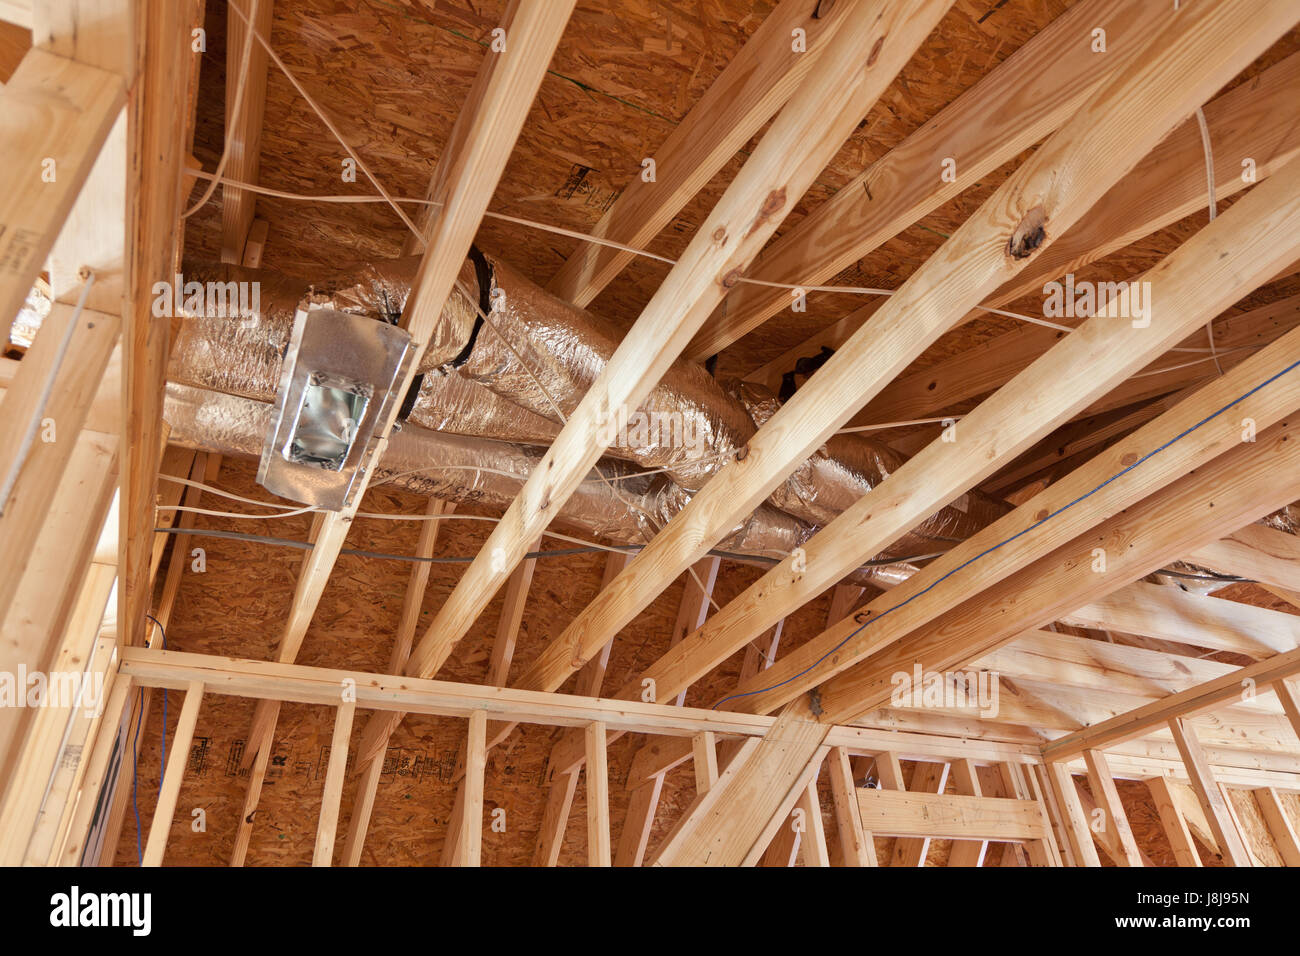 New home construction with duct work in attic space - Stock Image